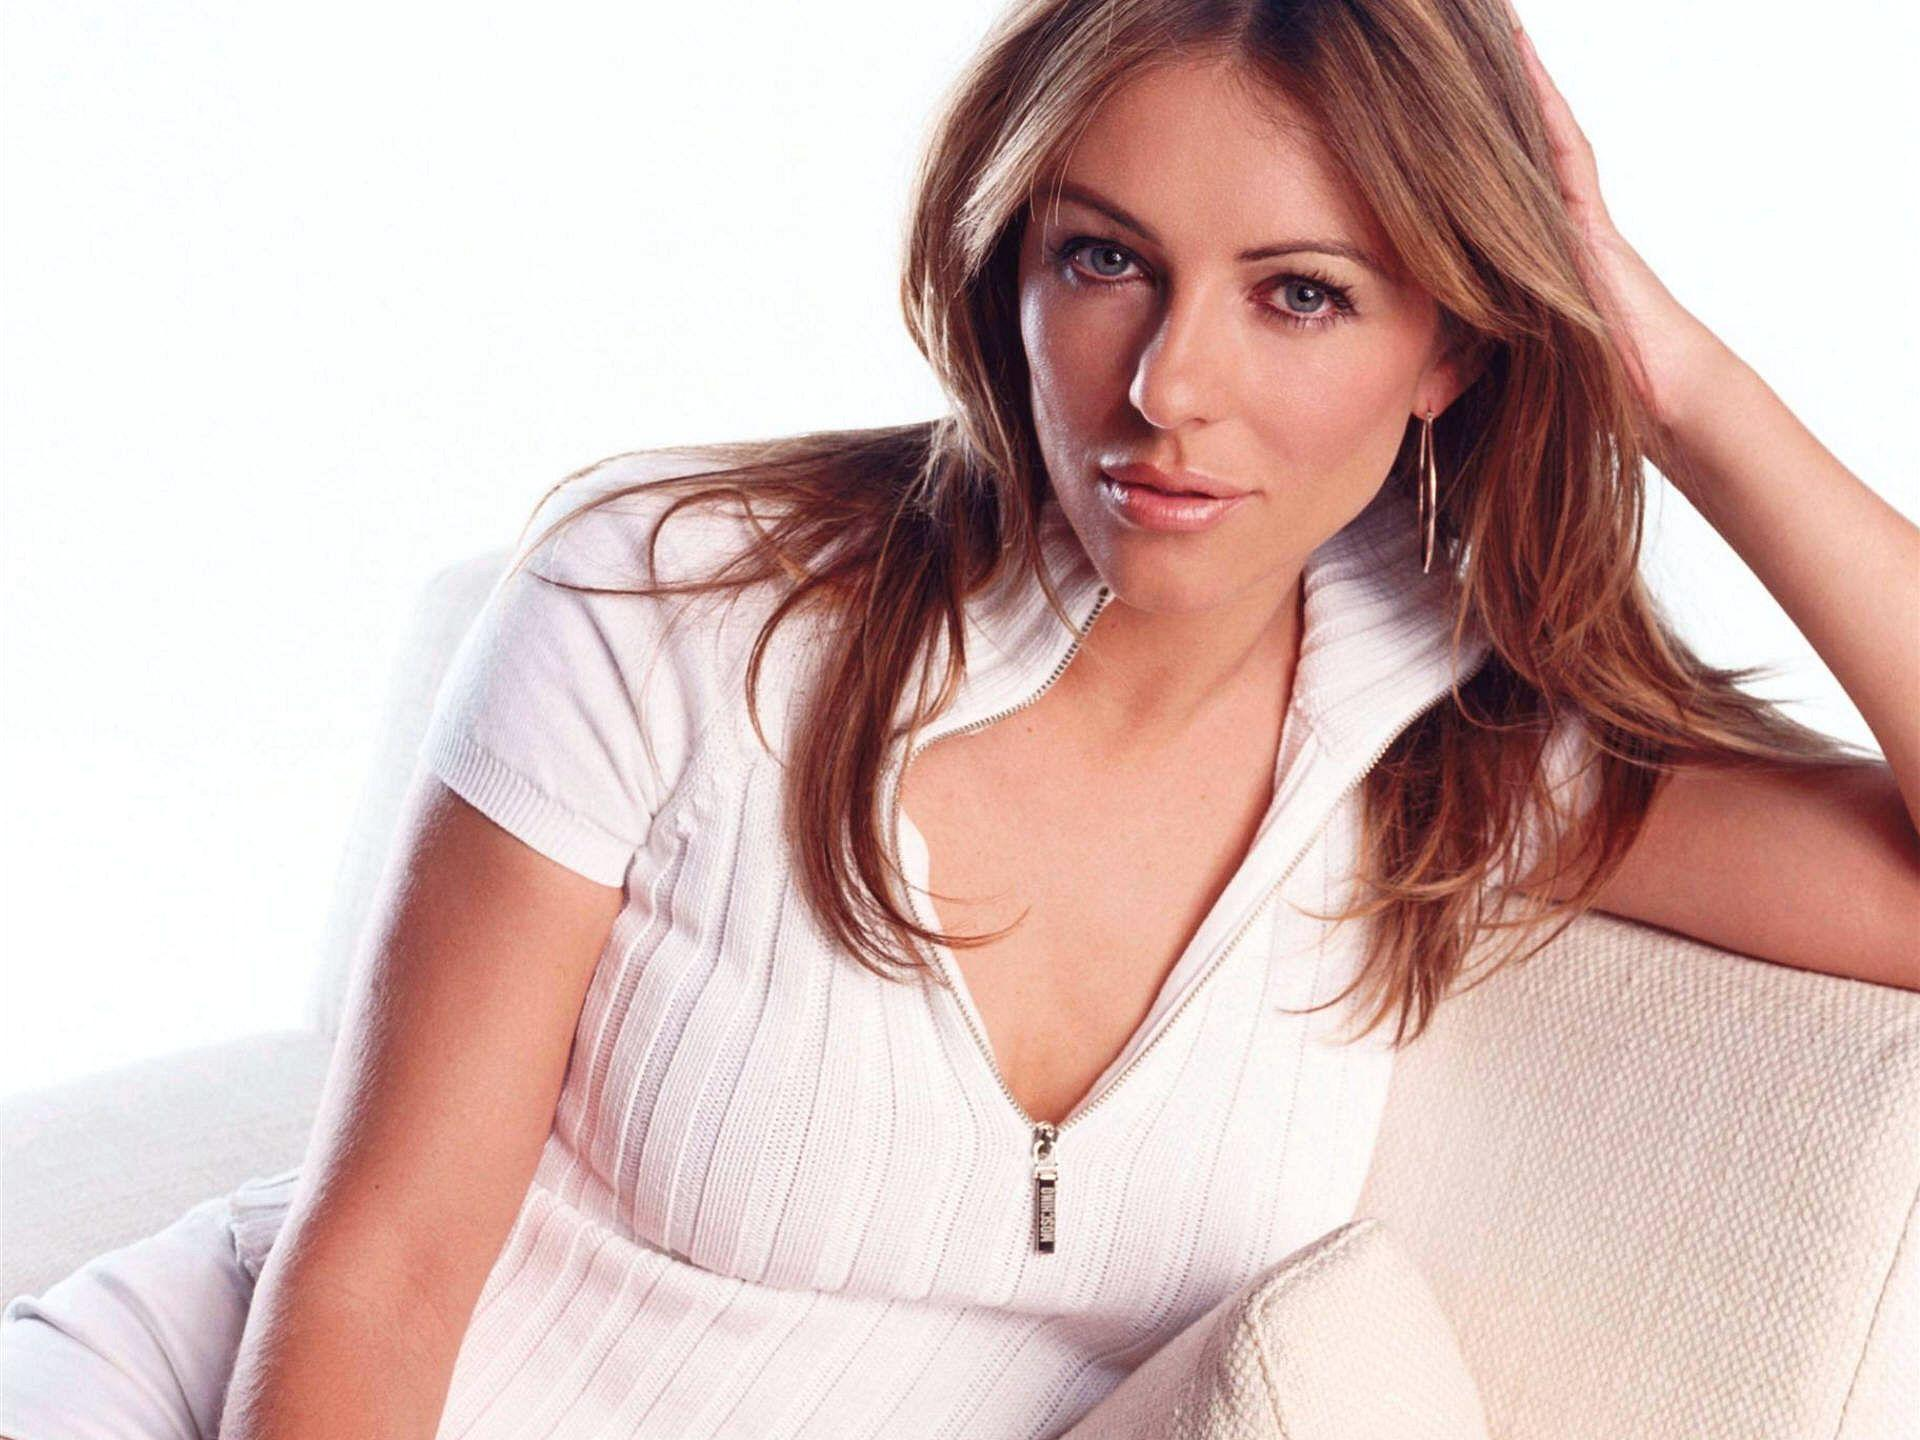 Elizabeth Hurley Wallpaper | 1920x1440 | ID:2051 - WallpaperVortex.com